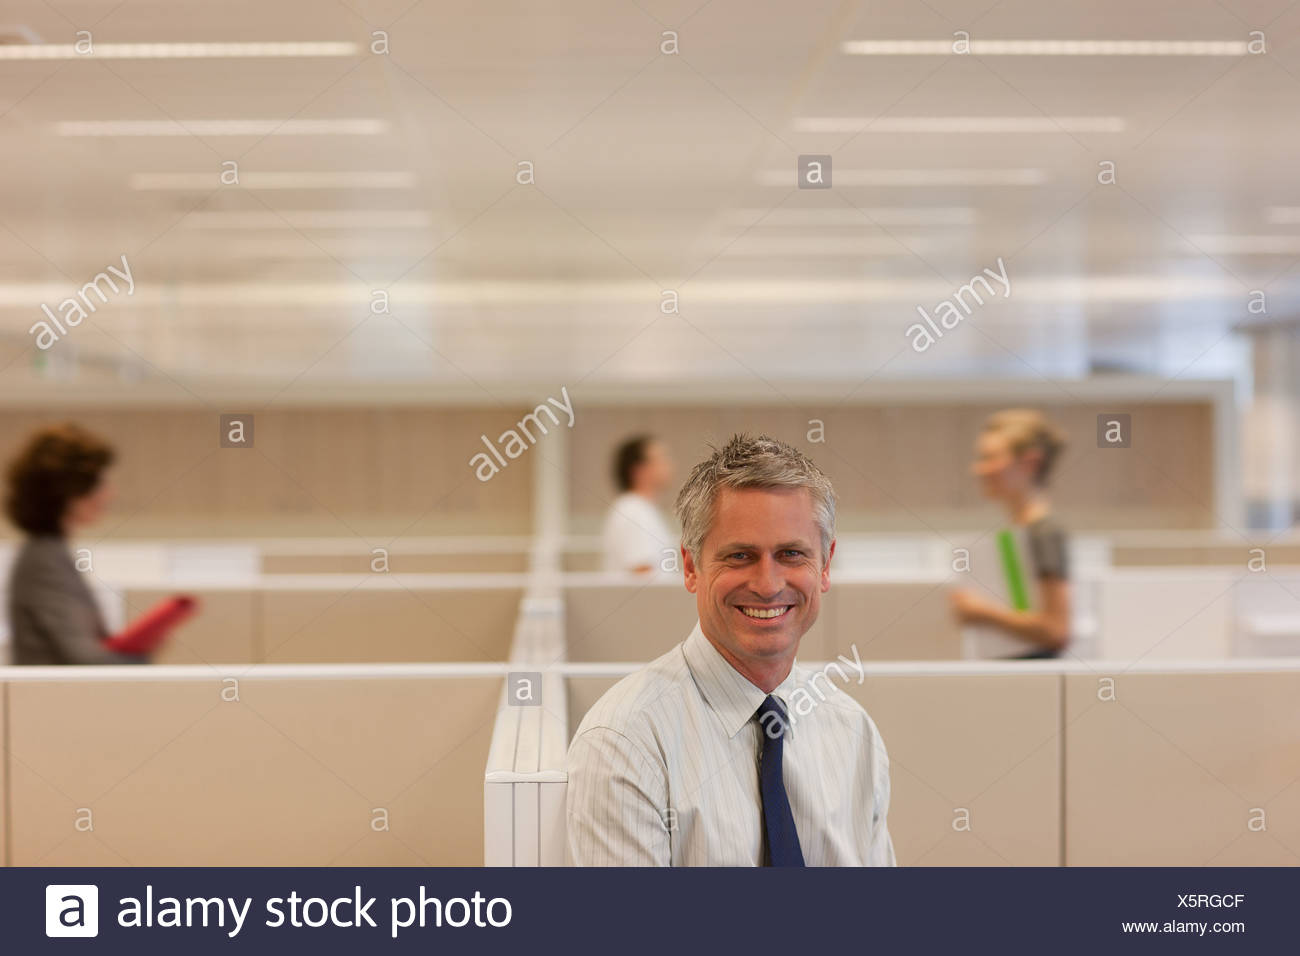 Businessman standing in office cubicle - Stock Image